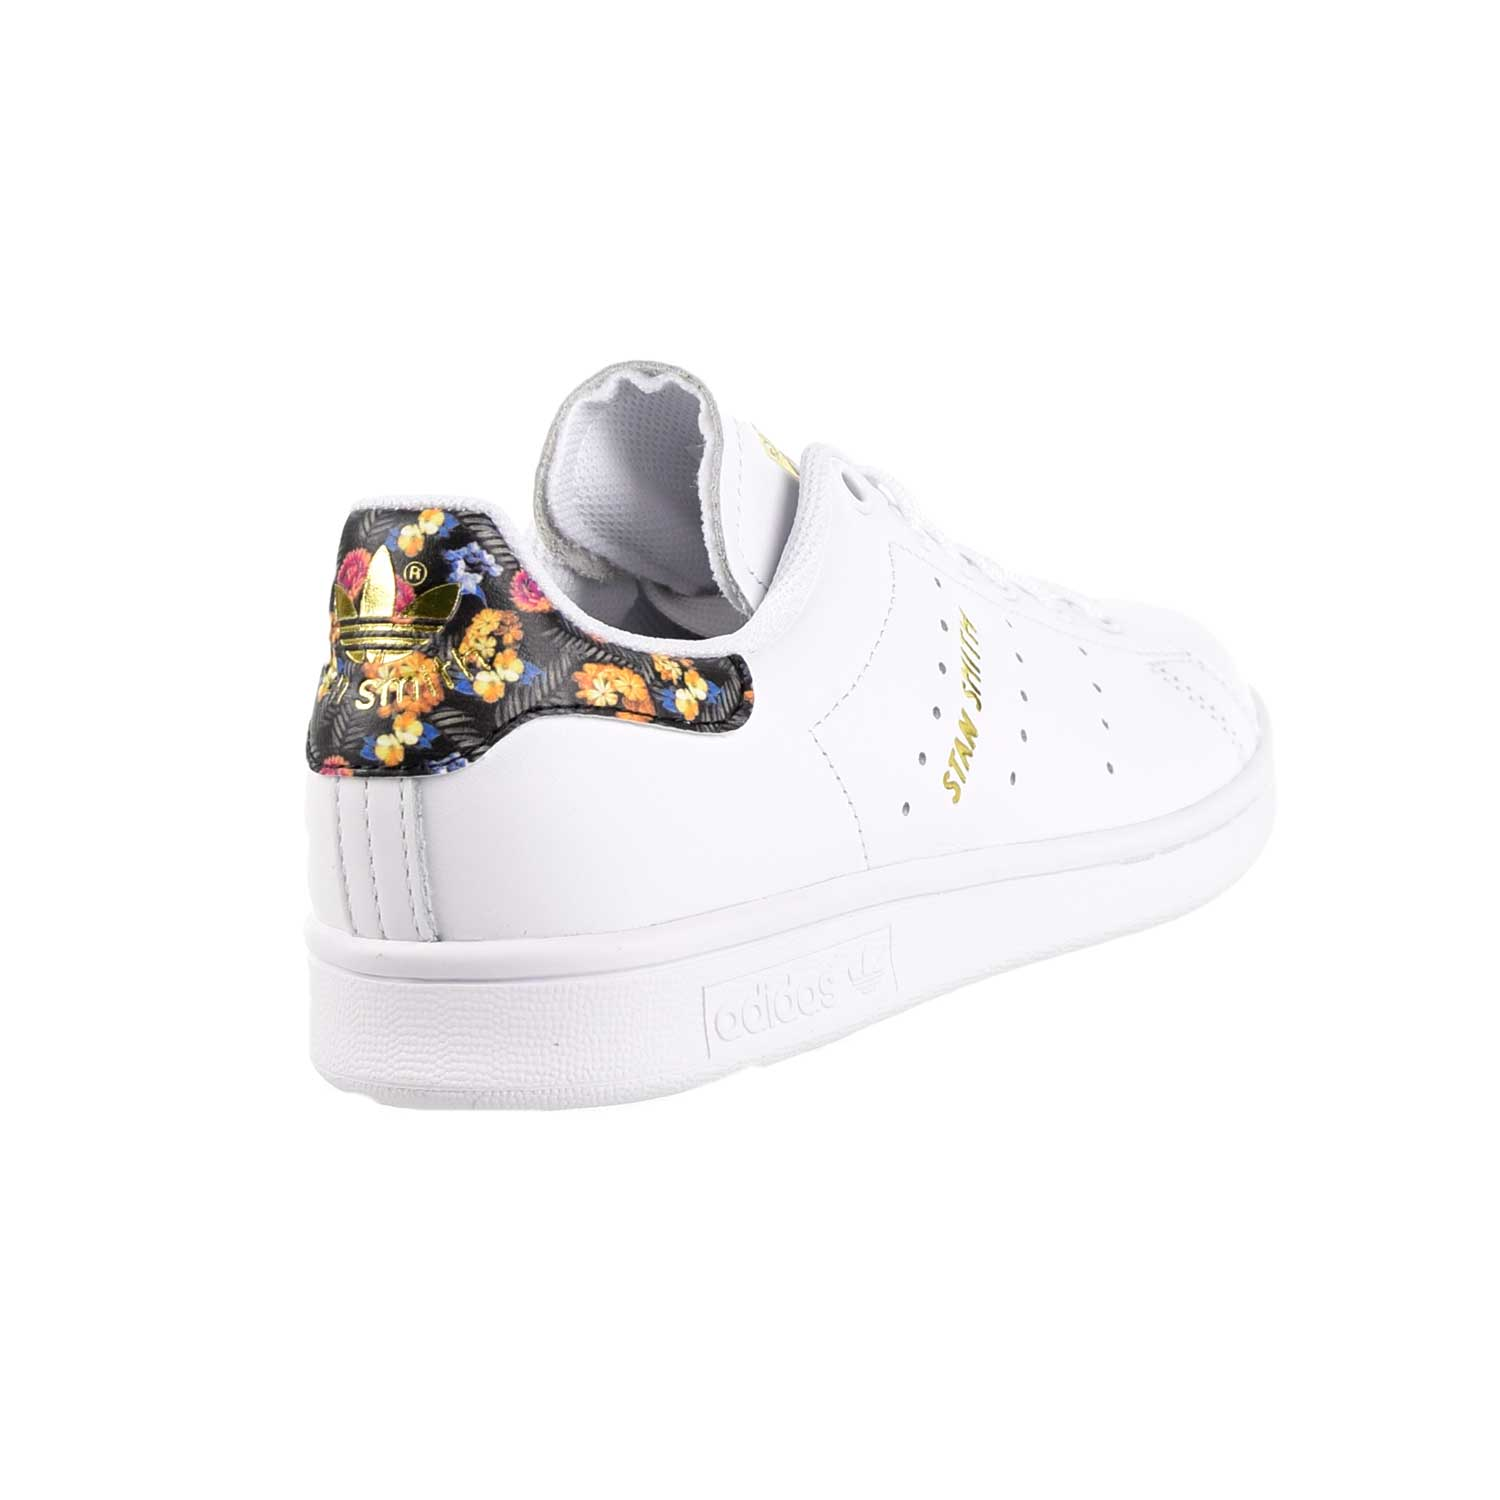 Adidas Stan Smith Womens Shoes Floral